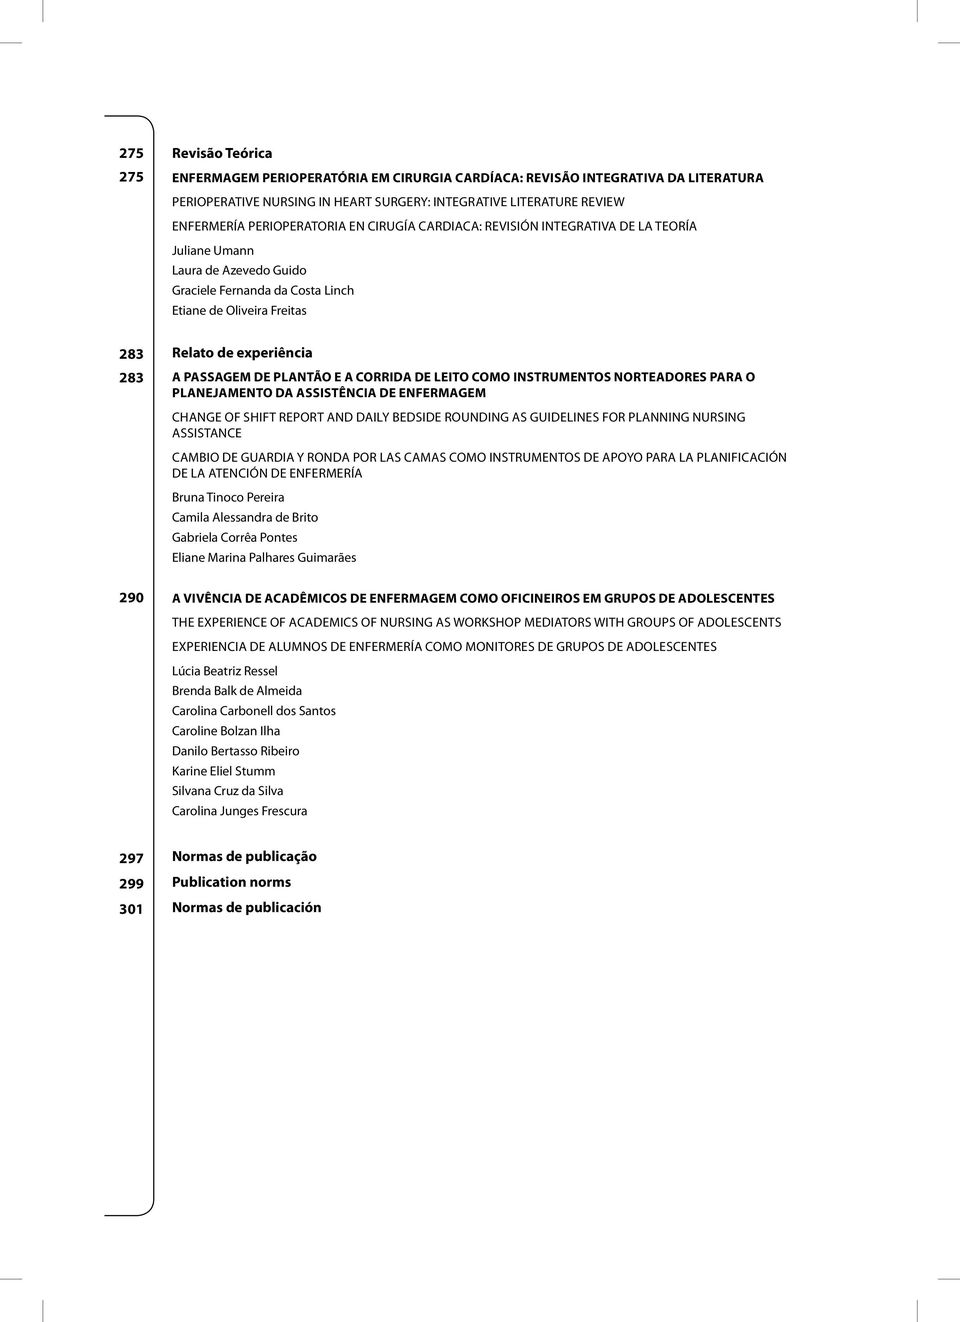 EACORRIDADELEITOCOMO INSTRUMENTOS NORTEADORES PARA O PLANEJAMENTODAASSISTÊNCIA DE ENFERMAGEM CHANGE OF SHIFT REPORTAND DAILYBEDSIDE ROUNDING AS GUIDELINES FOR PLANNING NURSING ASSISTANCE CAMBIO DE